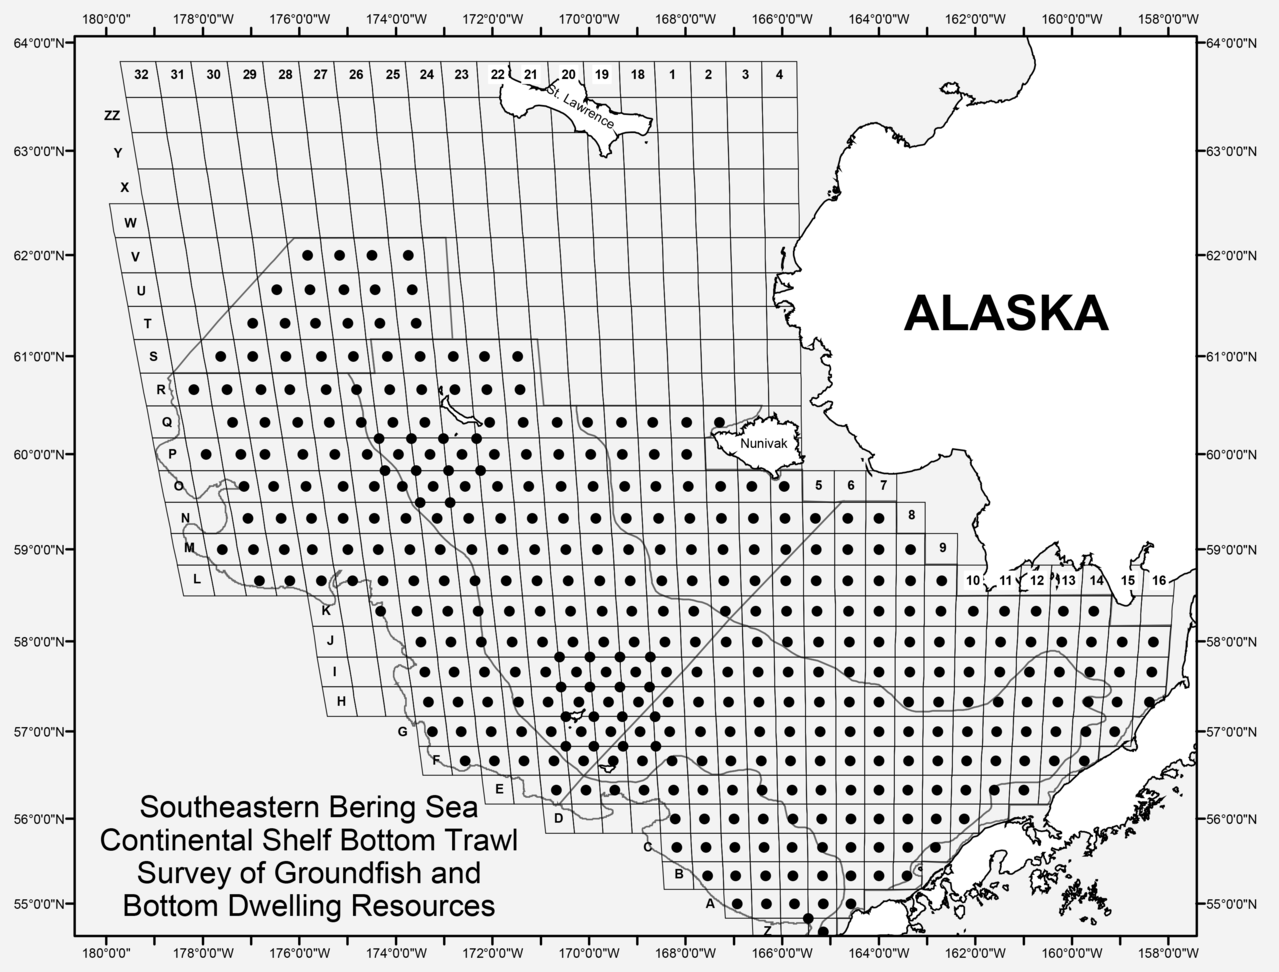 Southeastern Bering Sea Continental Shelf Bottom Trawl Survey of Groundfish and Bottom Dwelling Resources (map plot)